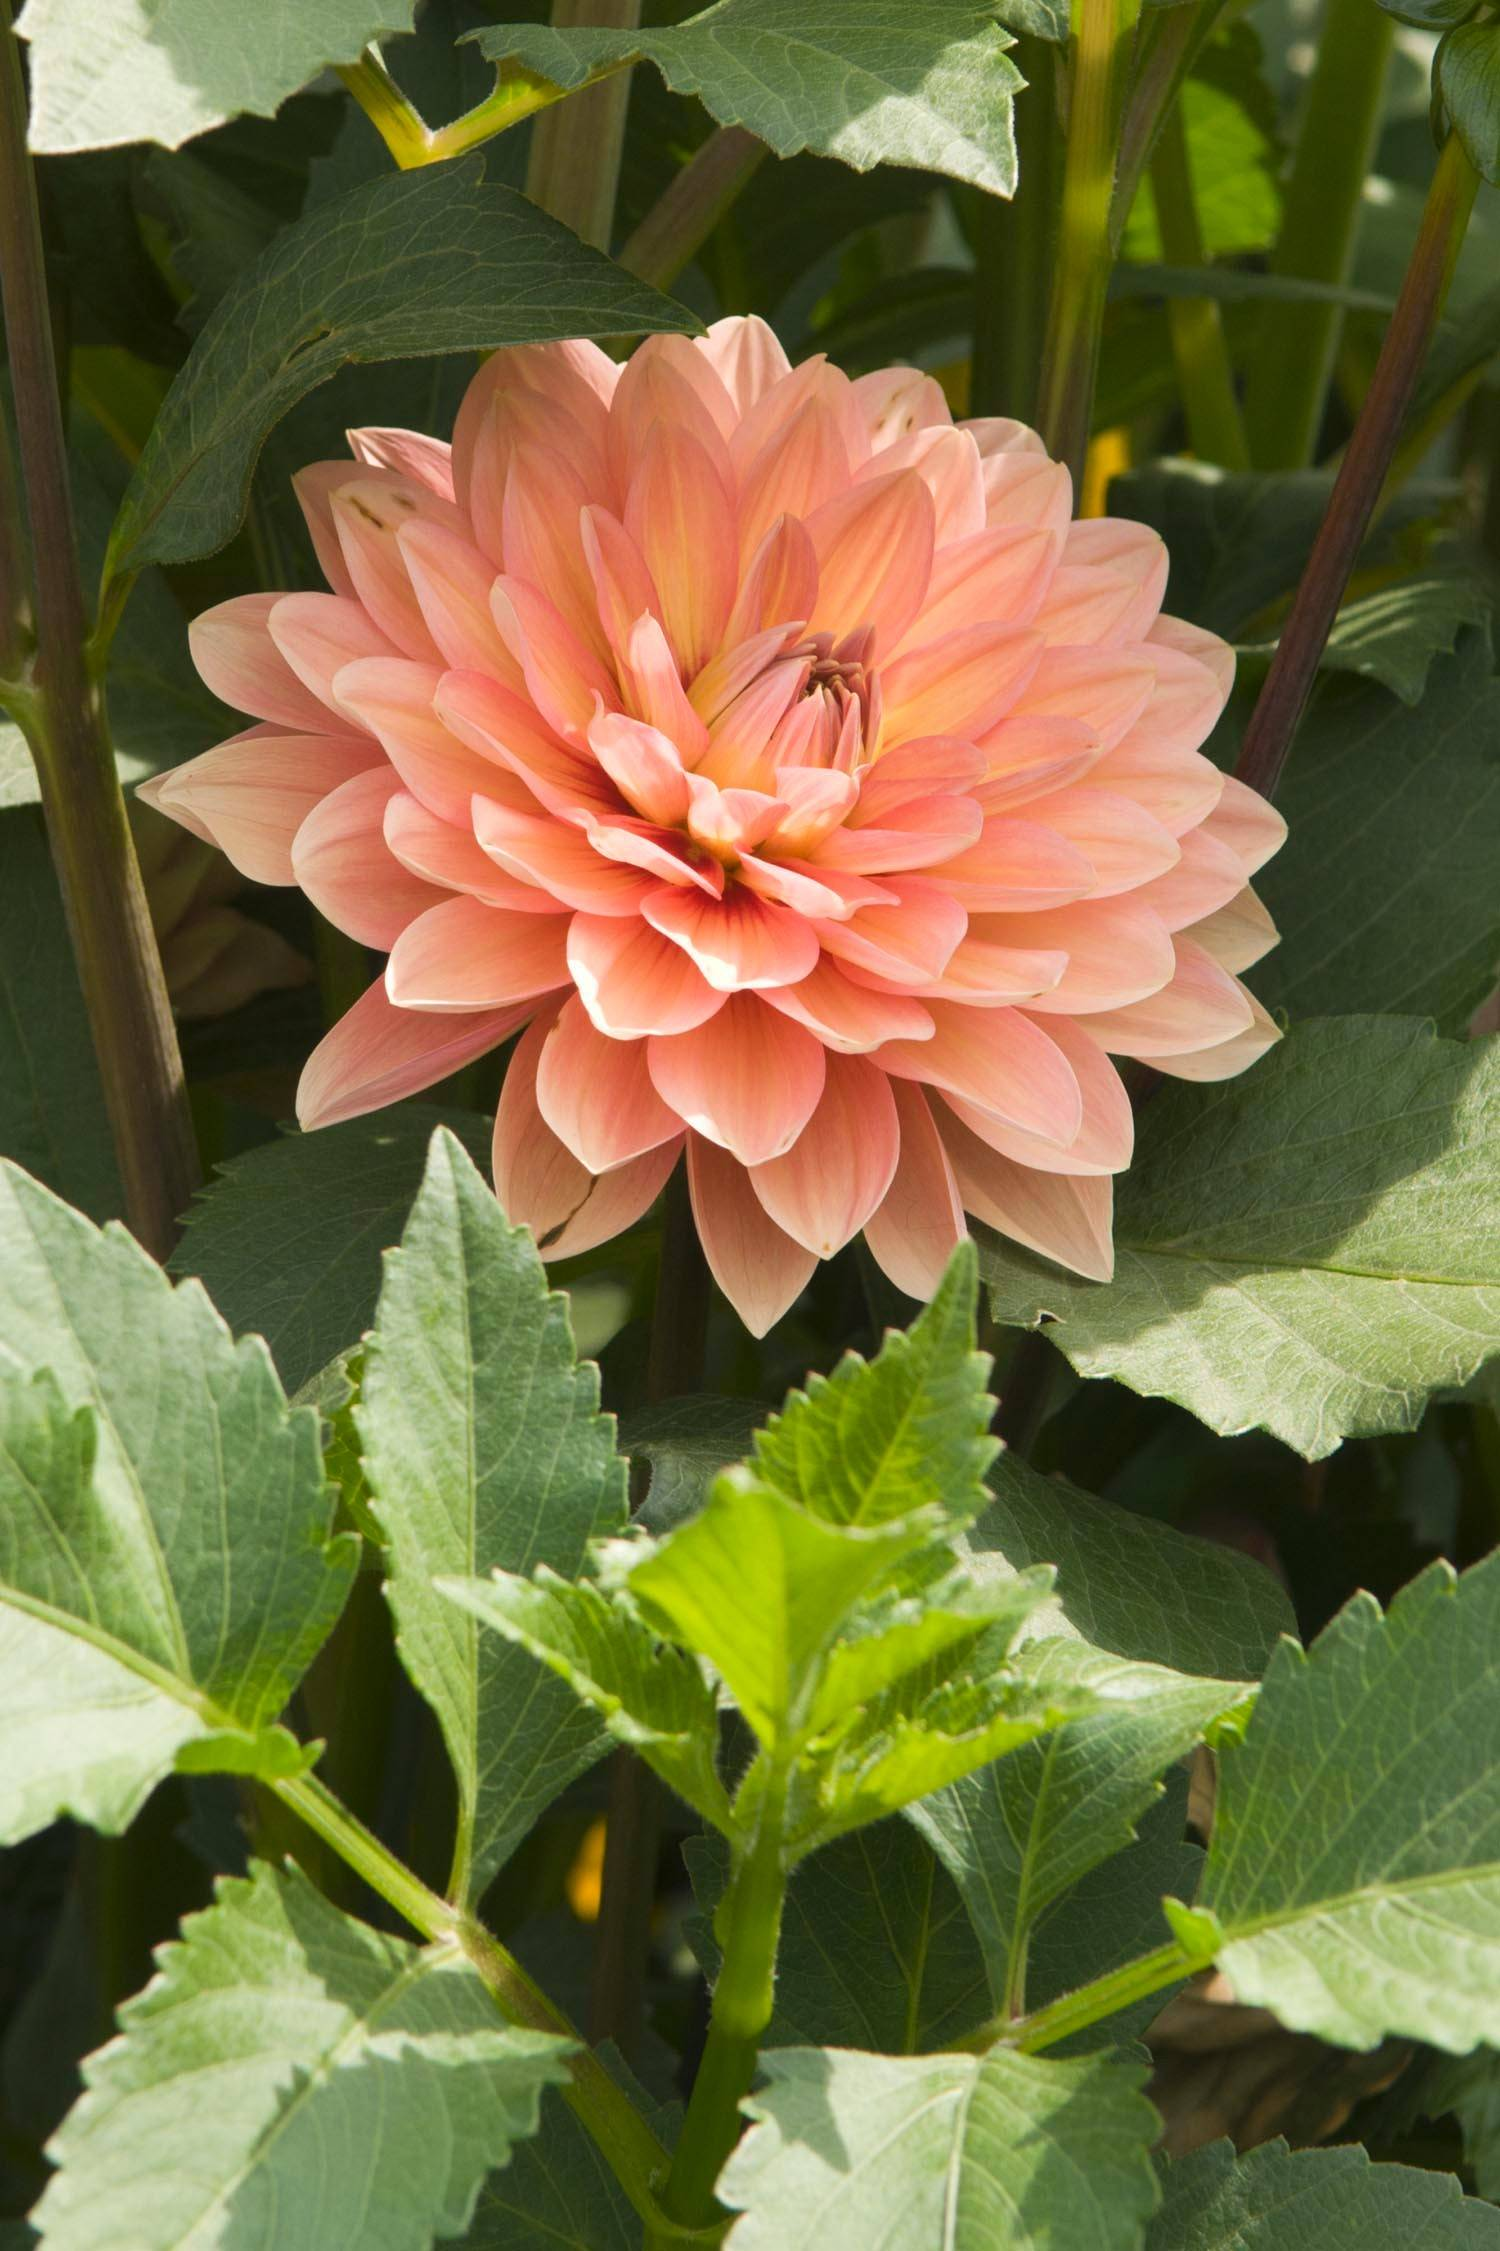 To maximize the size of your dahlia flower, keep the main stems free of side shoots.